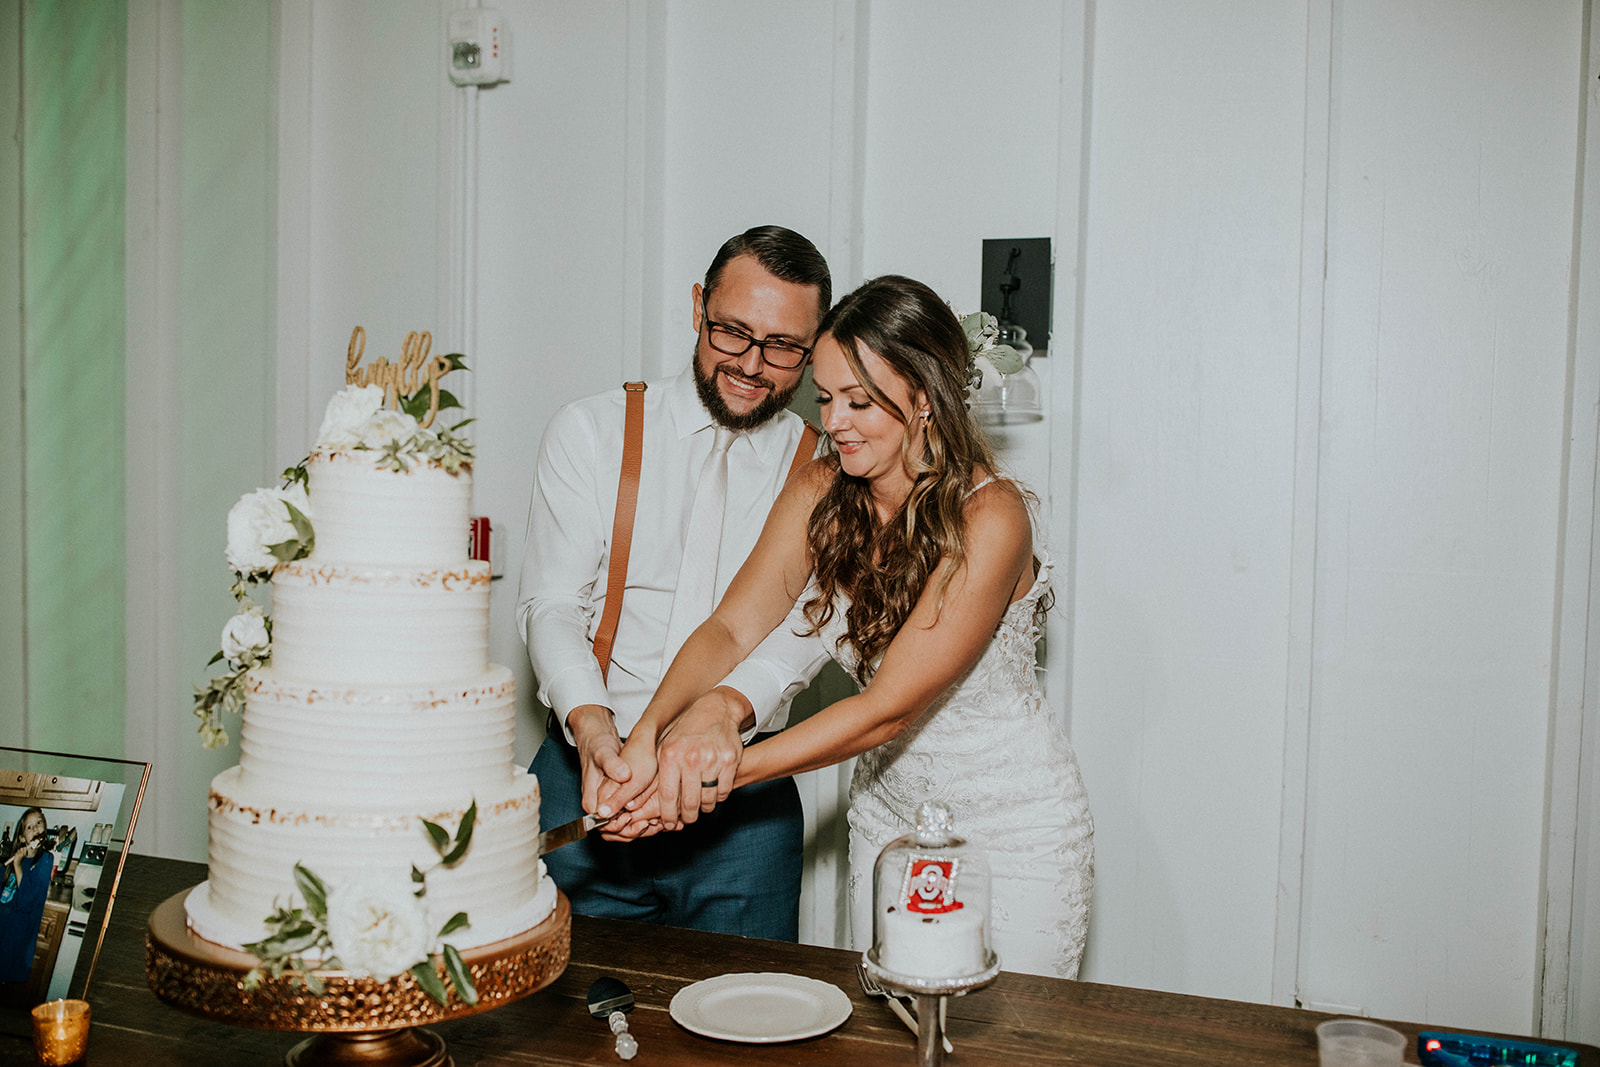 Bride and Groom cutting wedding cake by Copper Whisk Cakes | Nashville Bride Guide